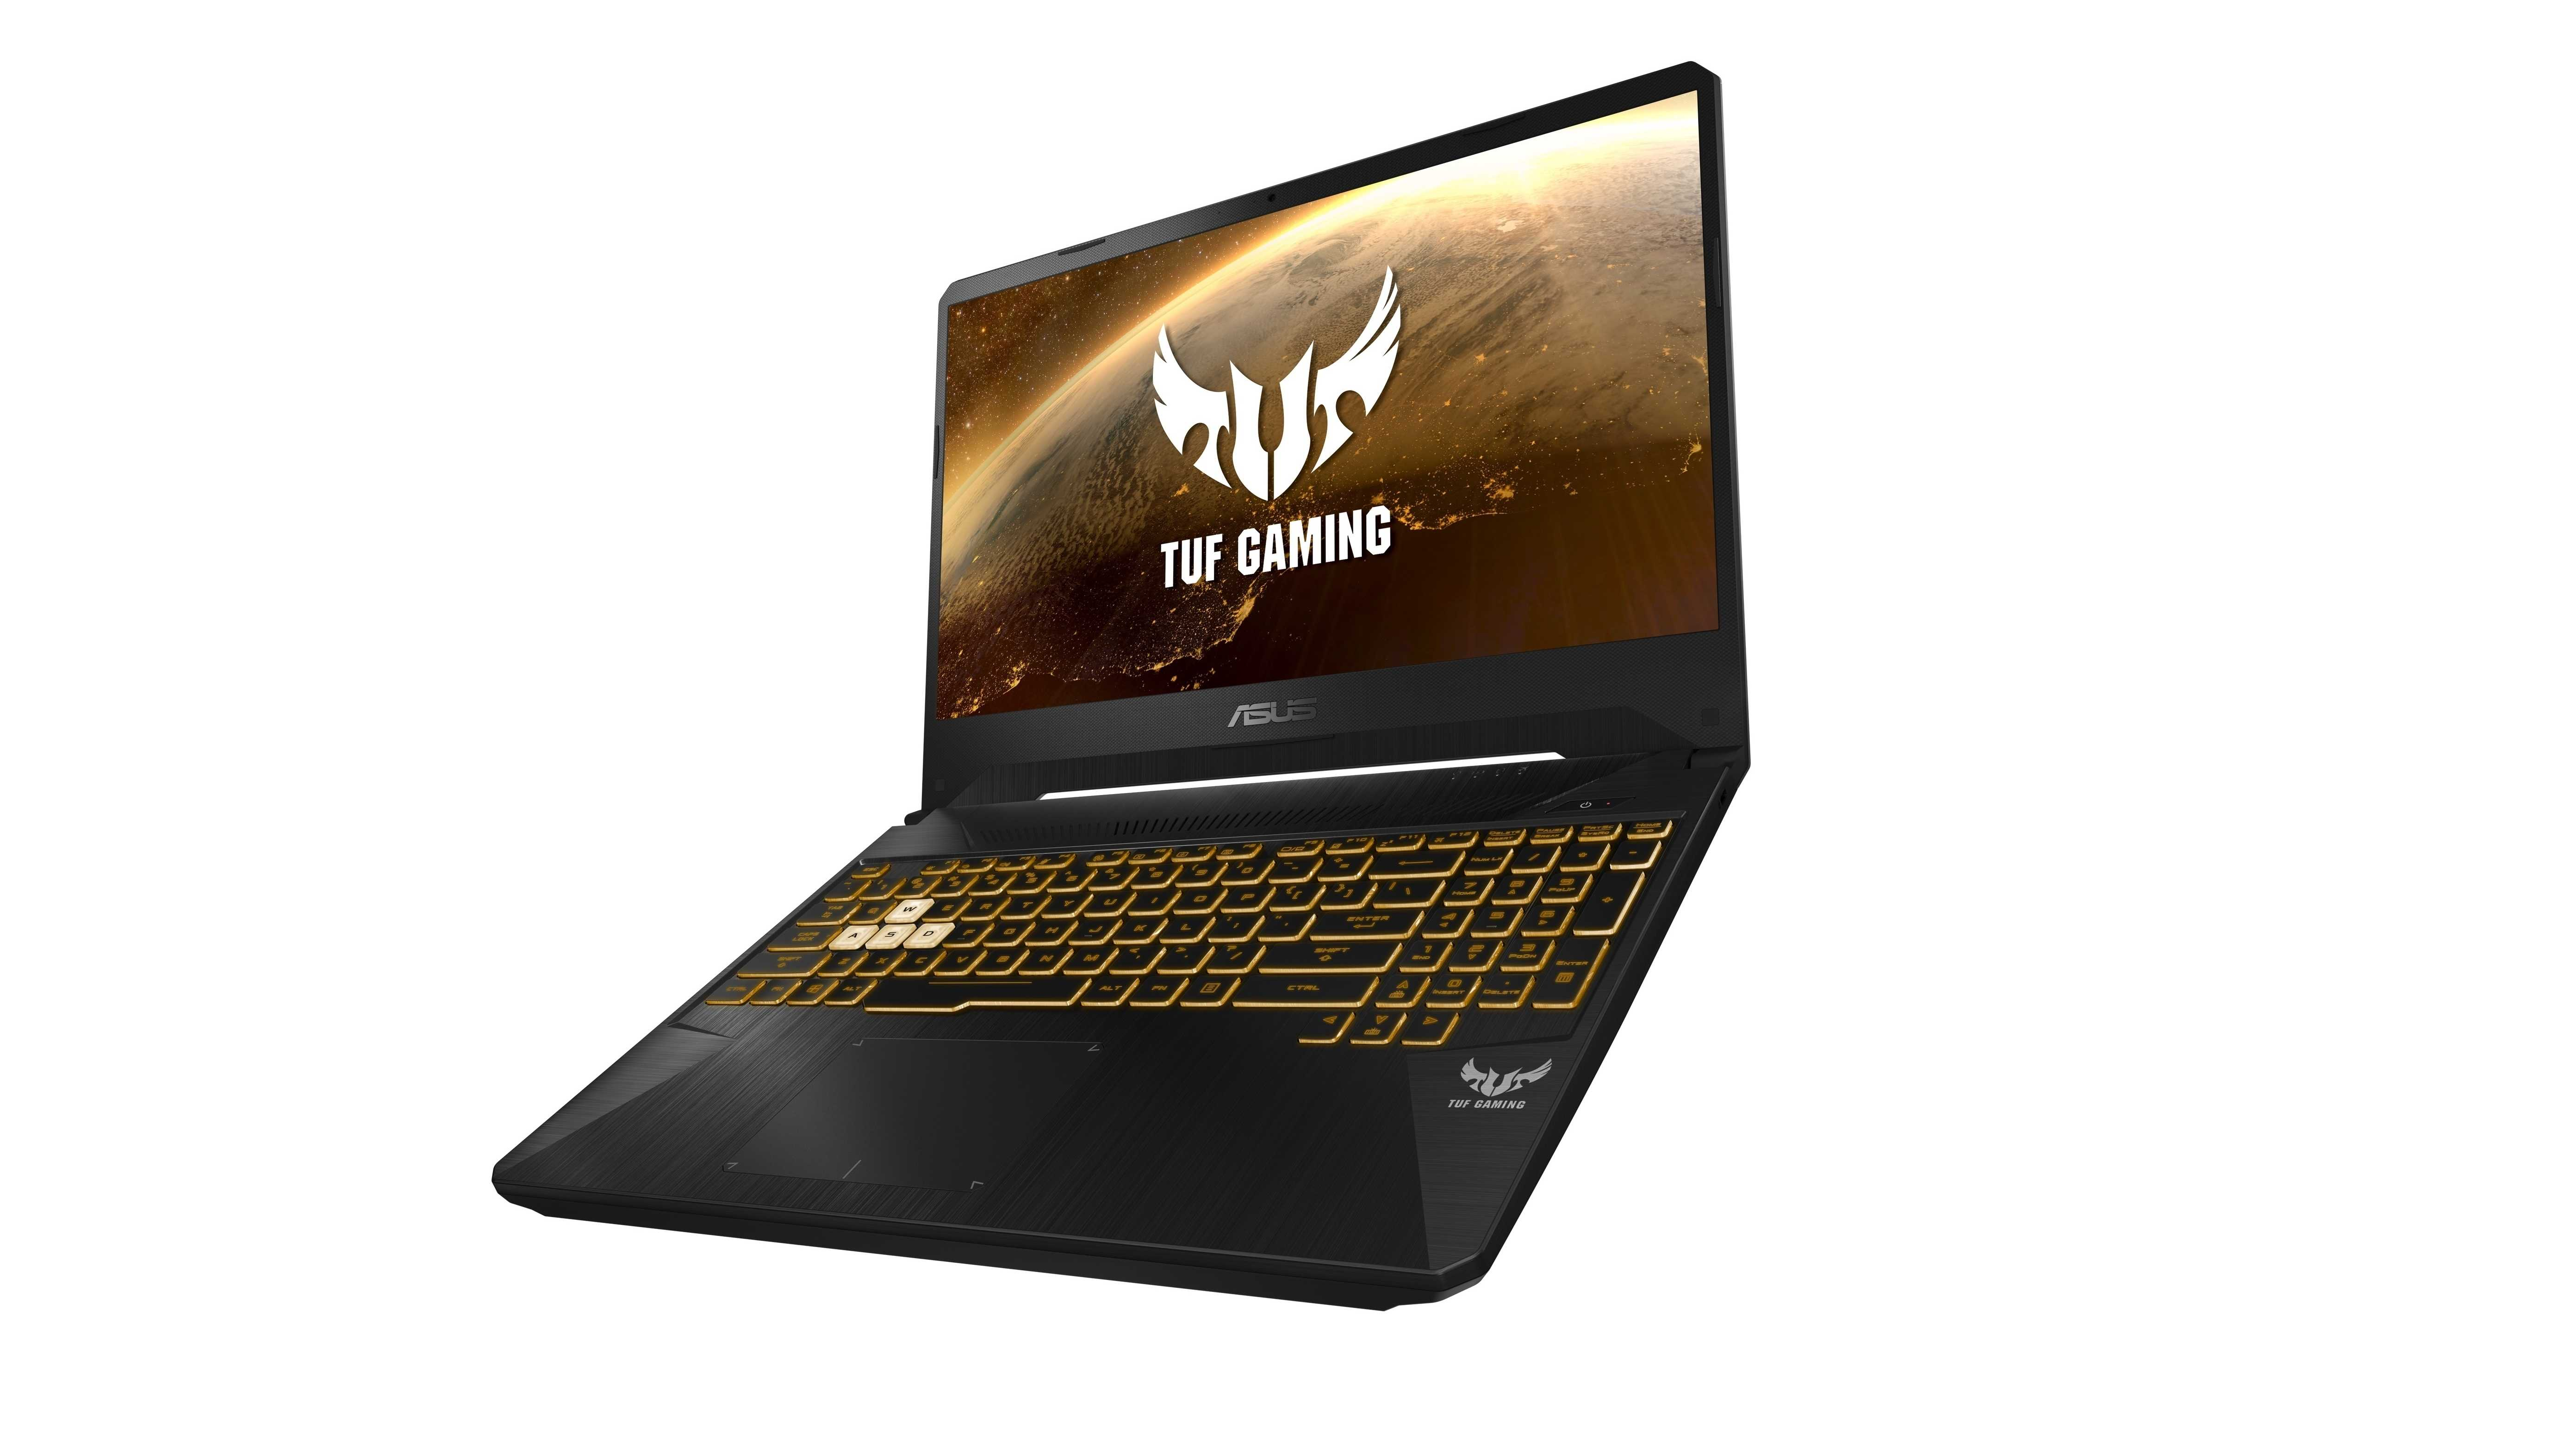 Asus bringt Gaming-Notebooks mit AMD Ryzen